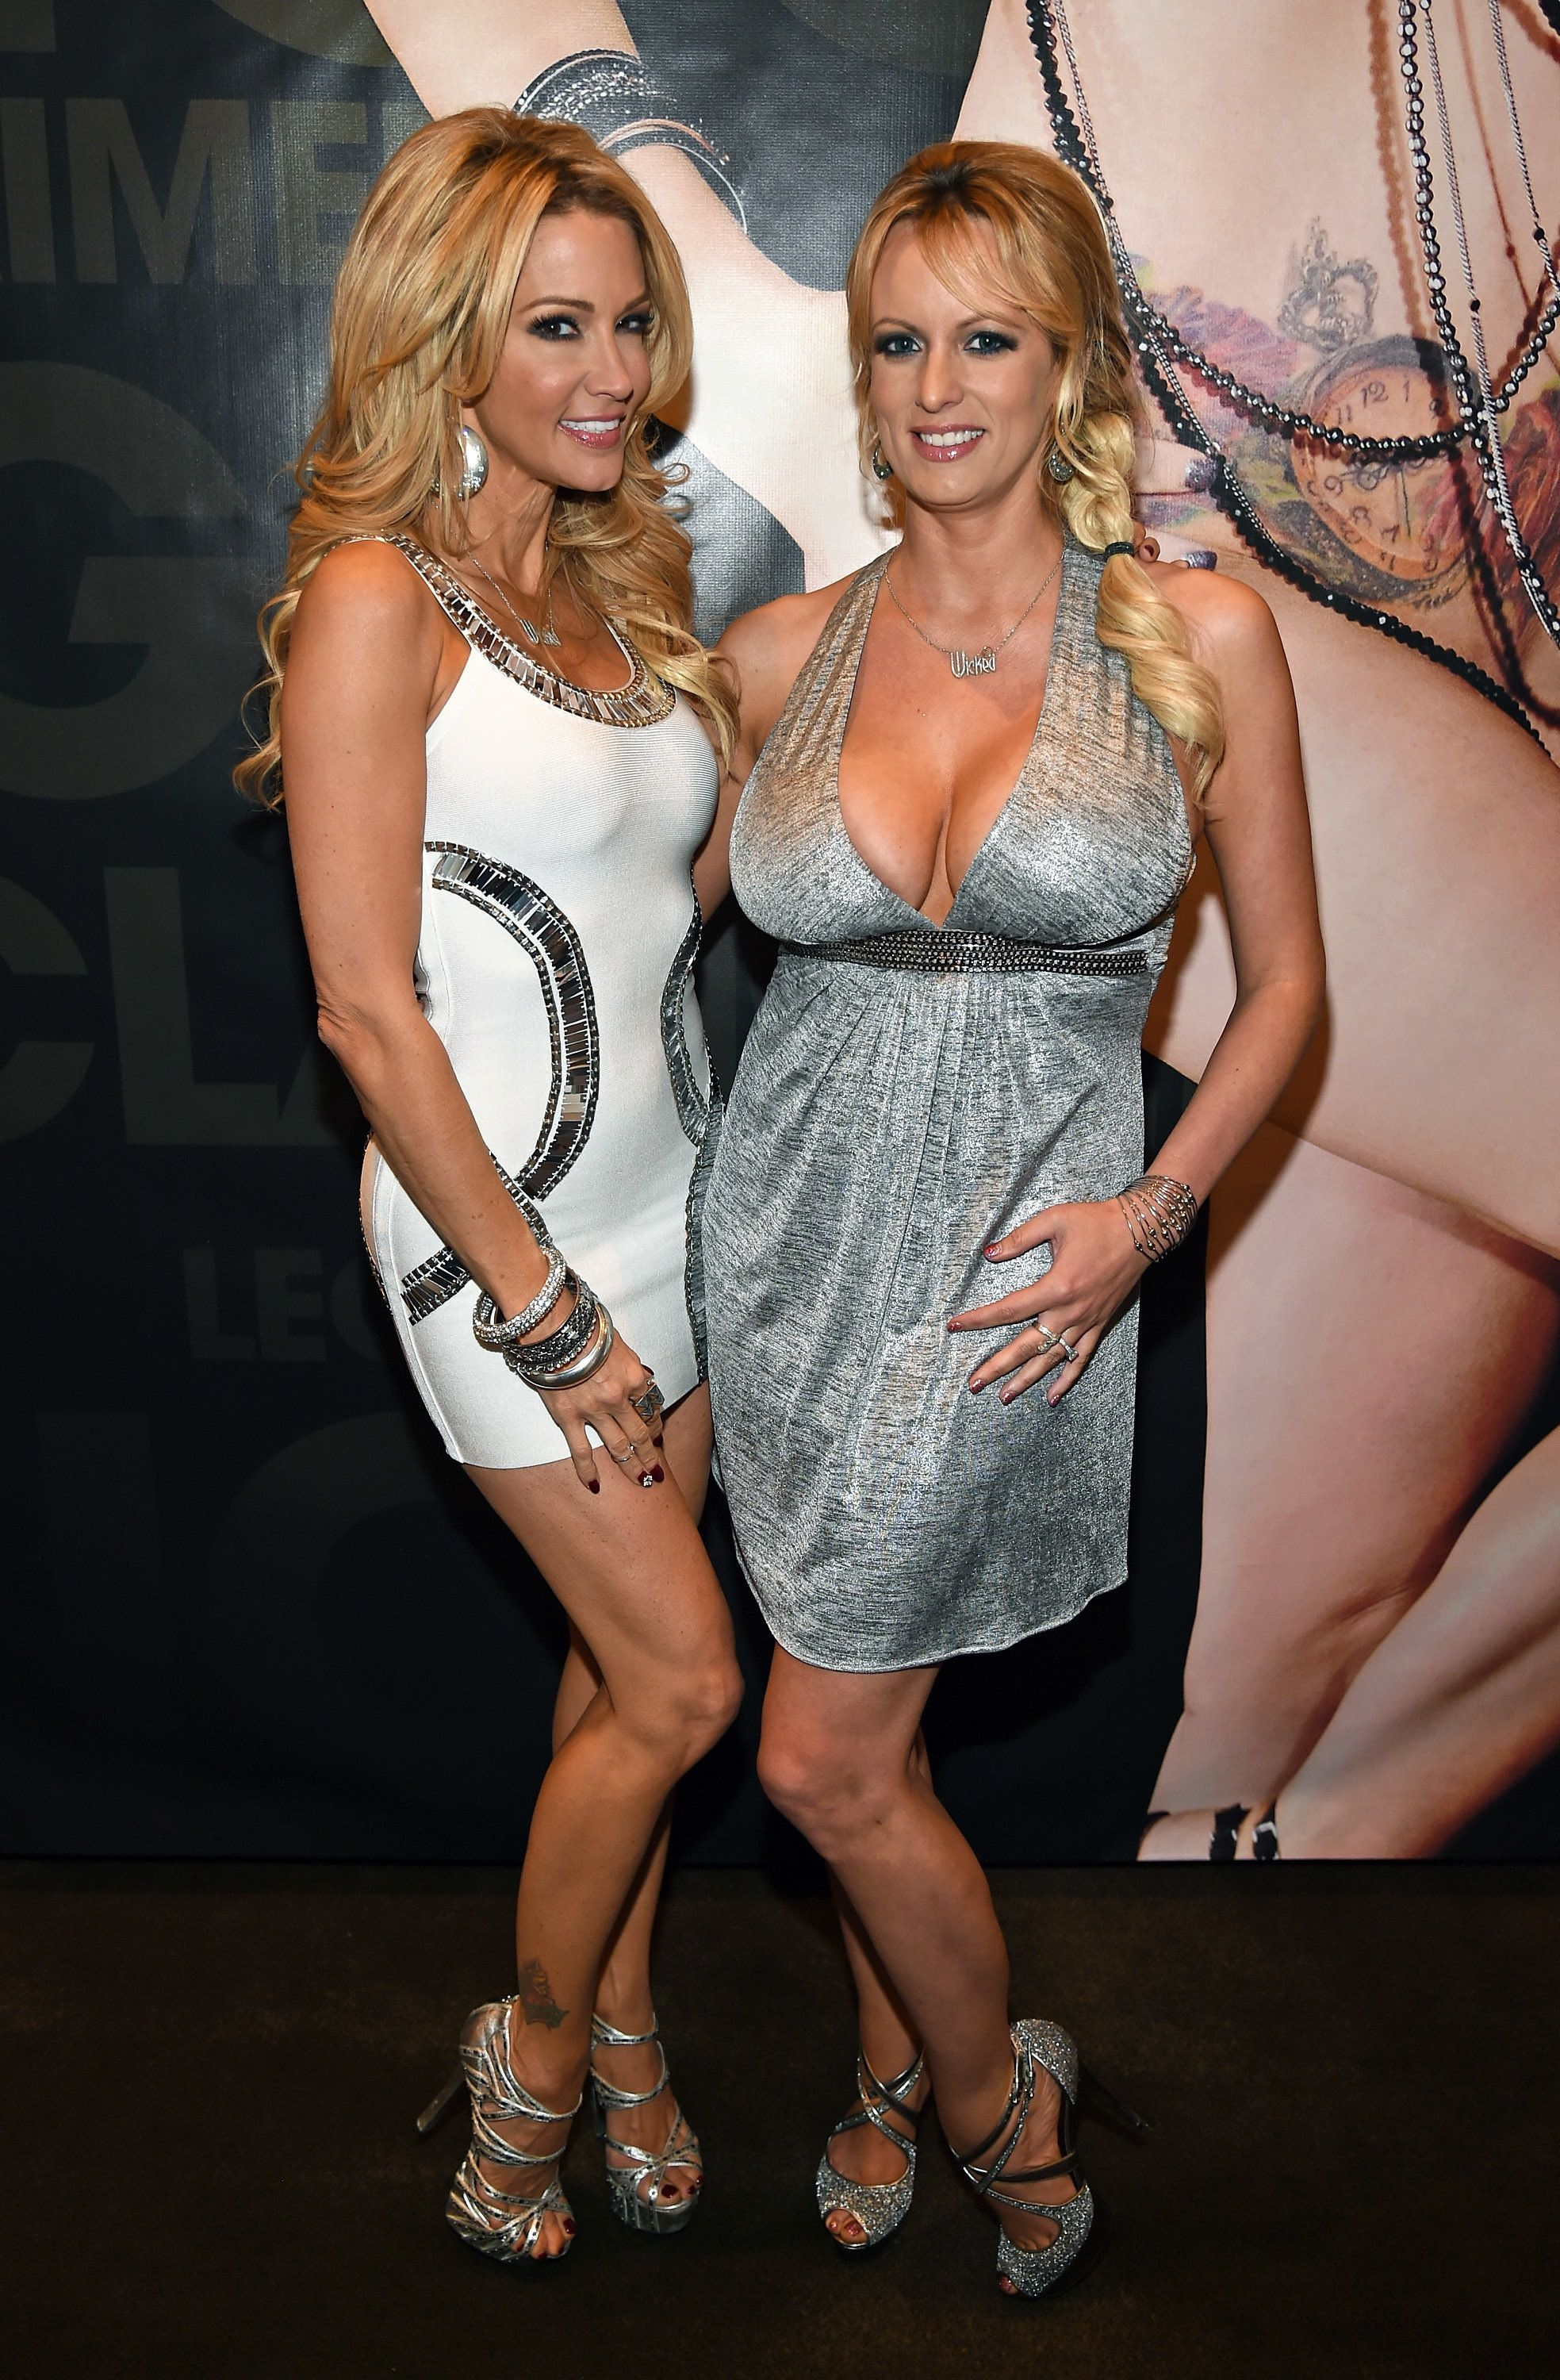 Jessica Drake (left) and Stormy Daniels pose at the Wicked Pictures booth at an adult entertainment expo in Las Vegas in 2015